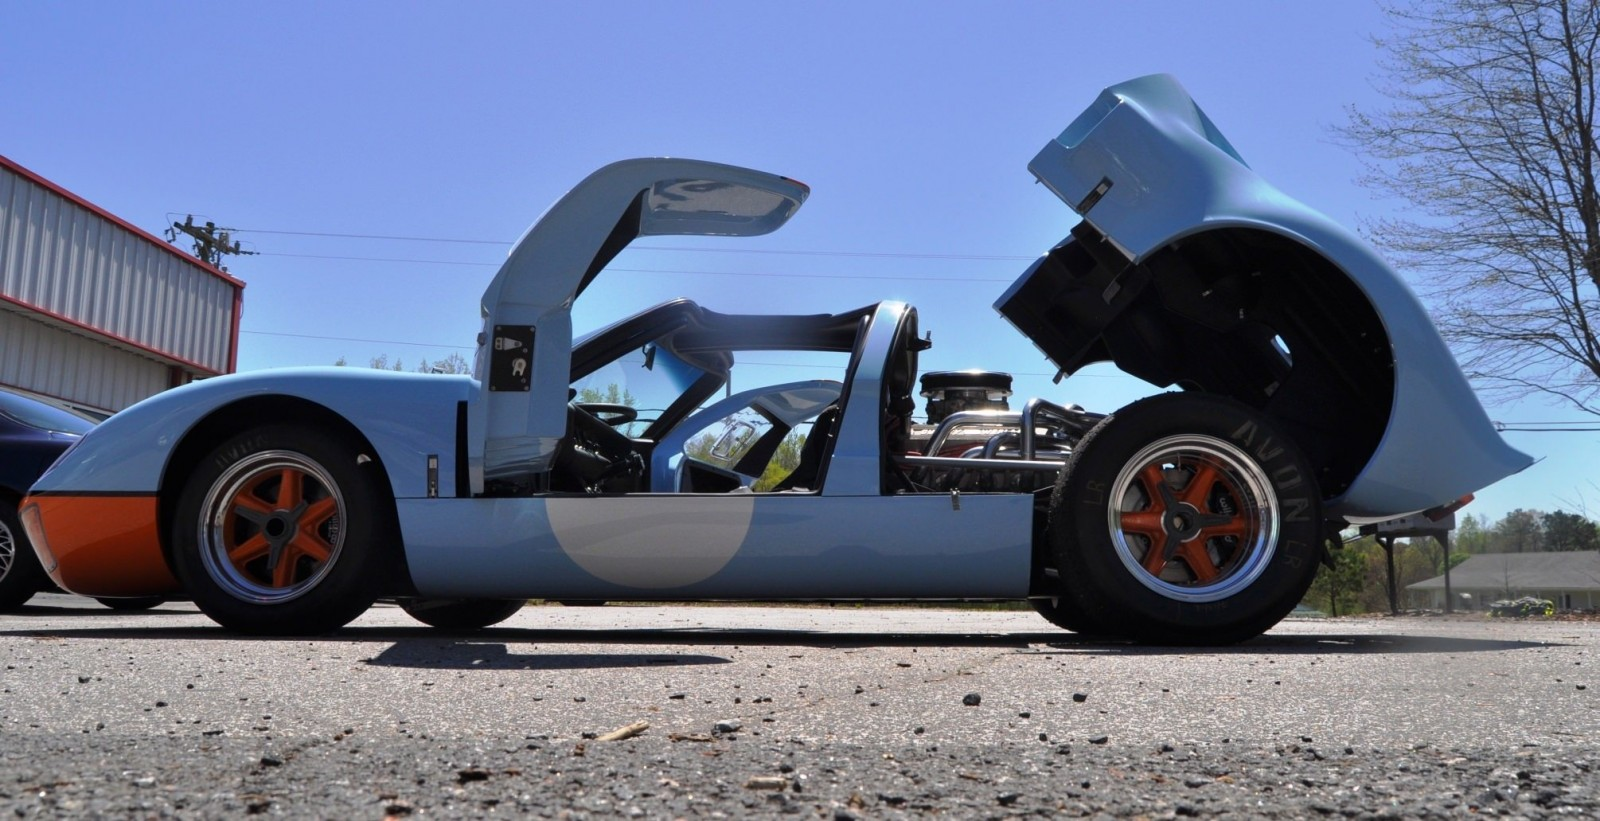 2014 Superformance GT40 Mark I - MEGA Photo Shoot and Ride-Along Videos 79